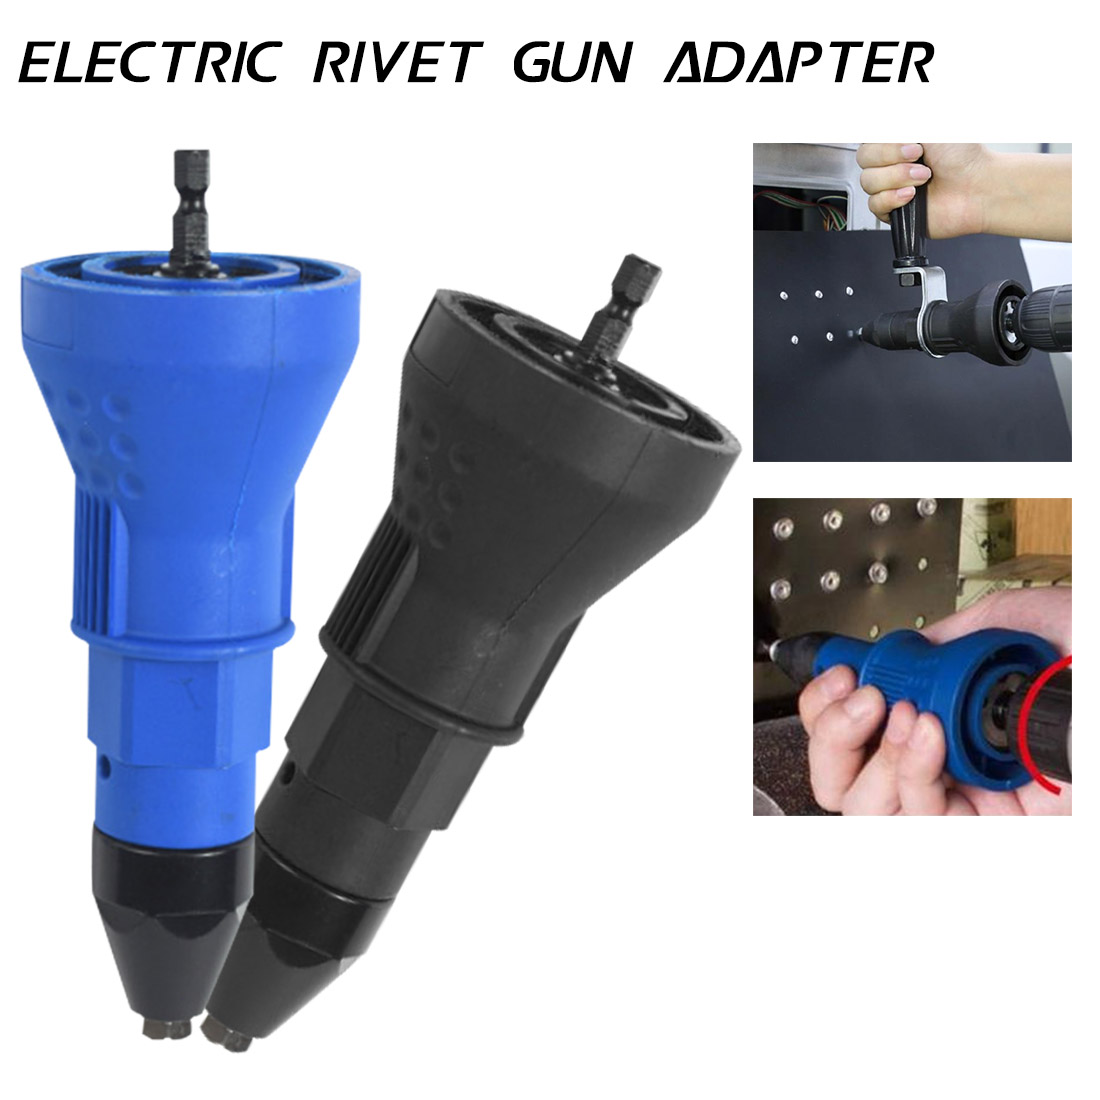 Rivet Adapter Insert Nut Hand Power Nozzle Accessories Electric Drill Tool Blue/Black